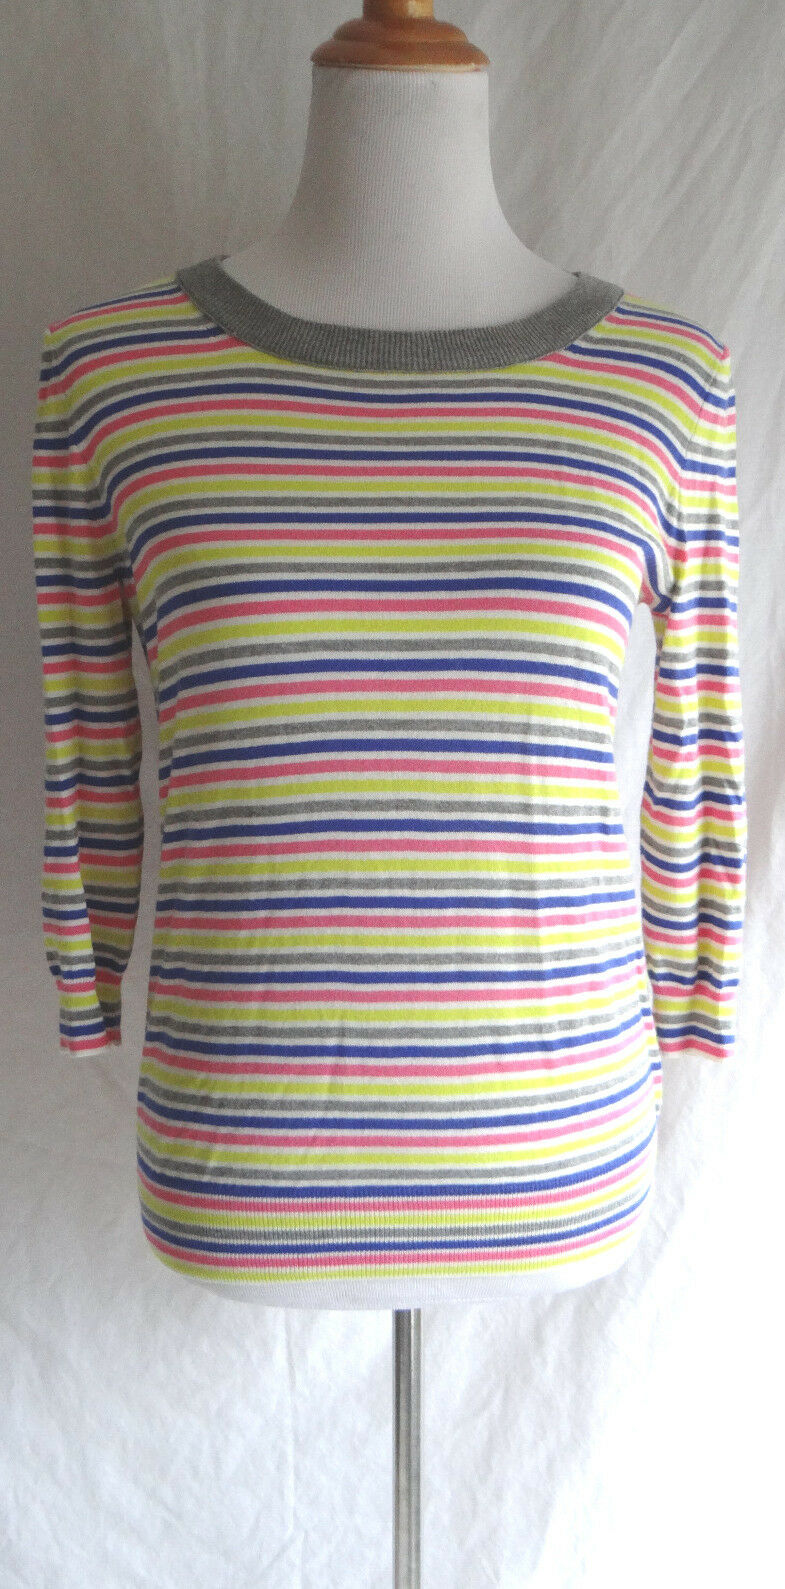 J. Crew Bright colors Striped 3 4 Length Sleeve Lightweight Cotton Sweater Small